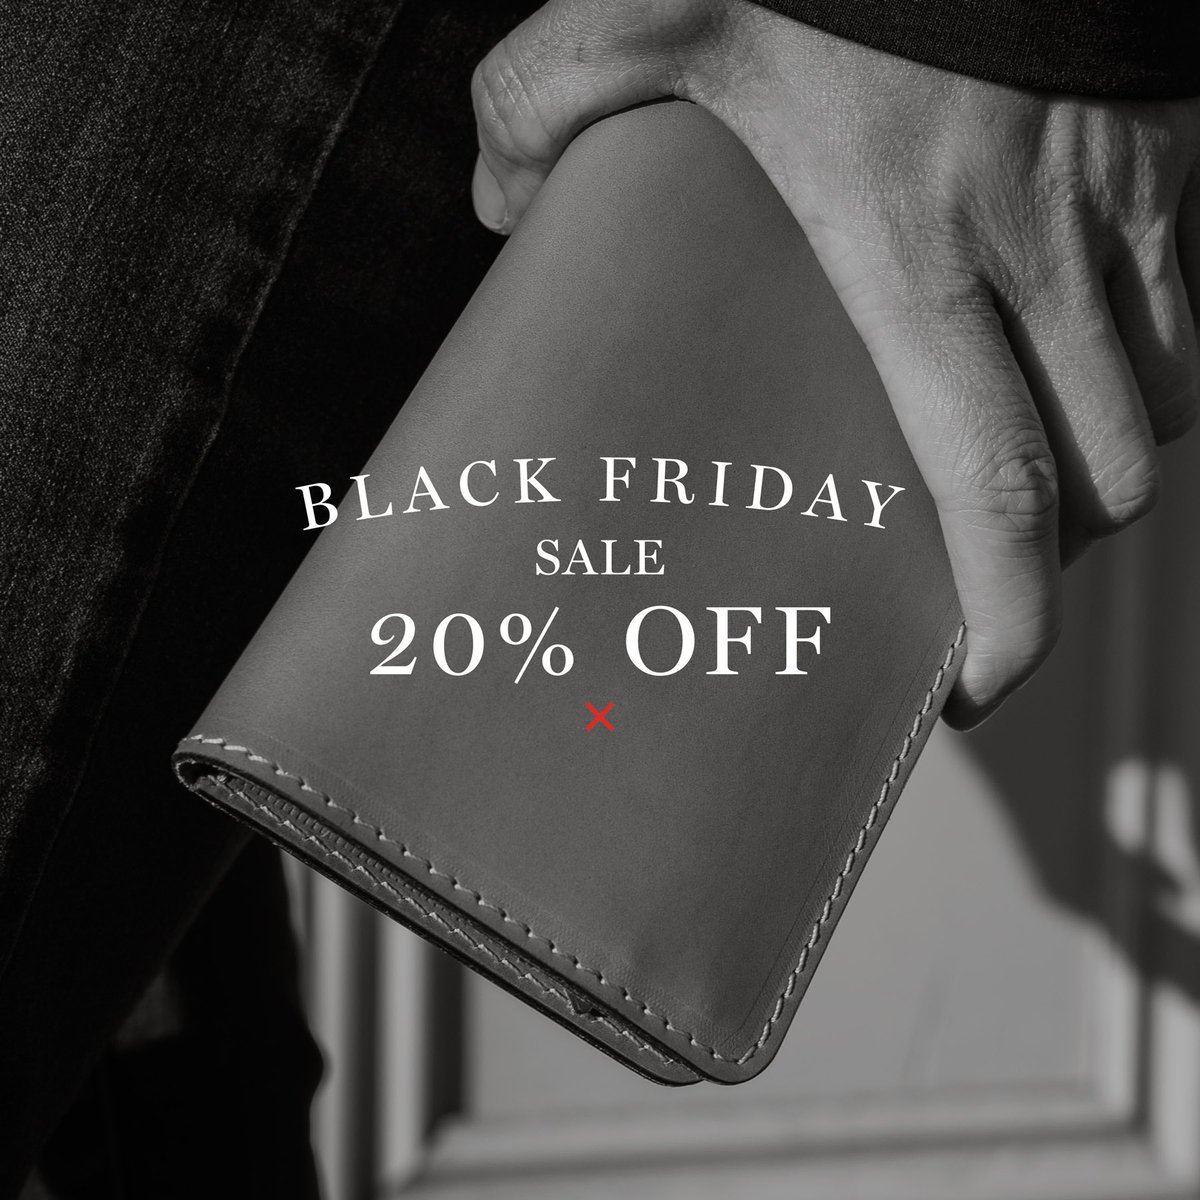 a265b38f79b1 Get 20% off our personalised leather goods at http   www.carveon.com Offer  ends at midnight  Monday 26th  - - - -  handmade  leather   personalisedgifts ...